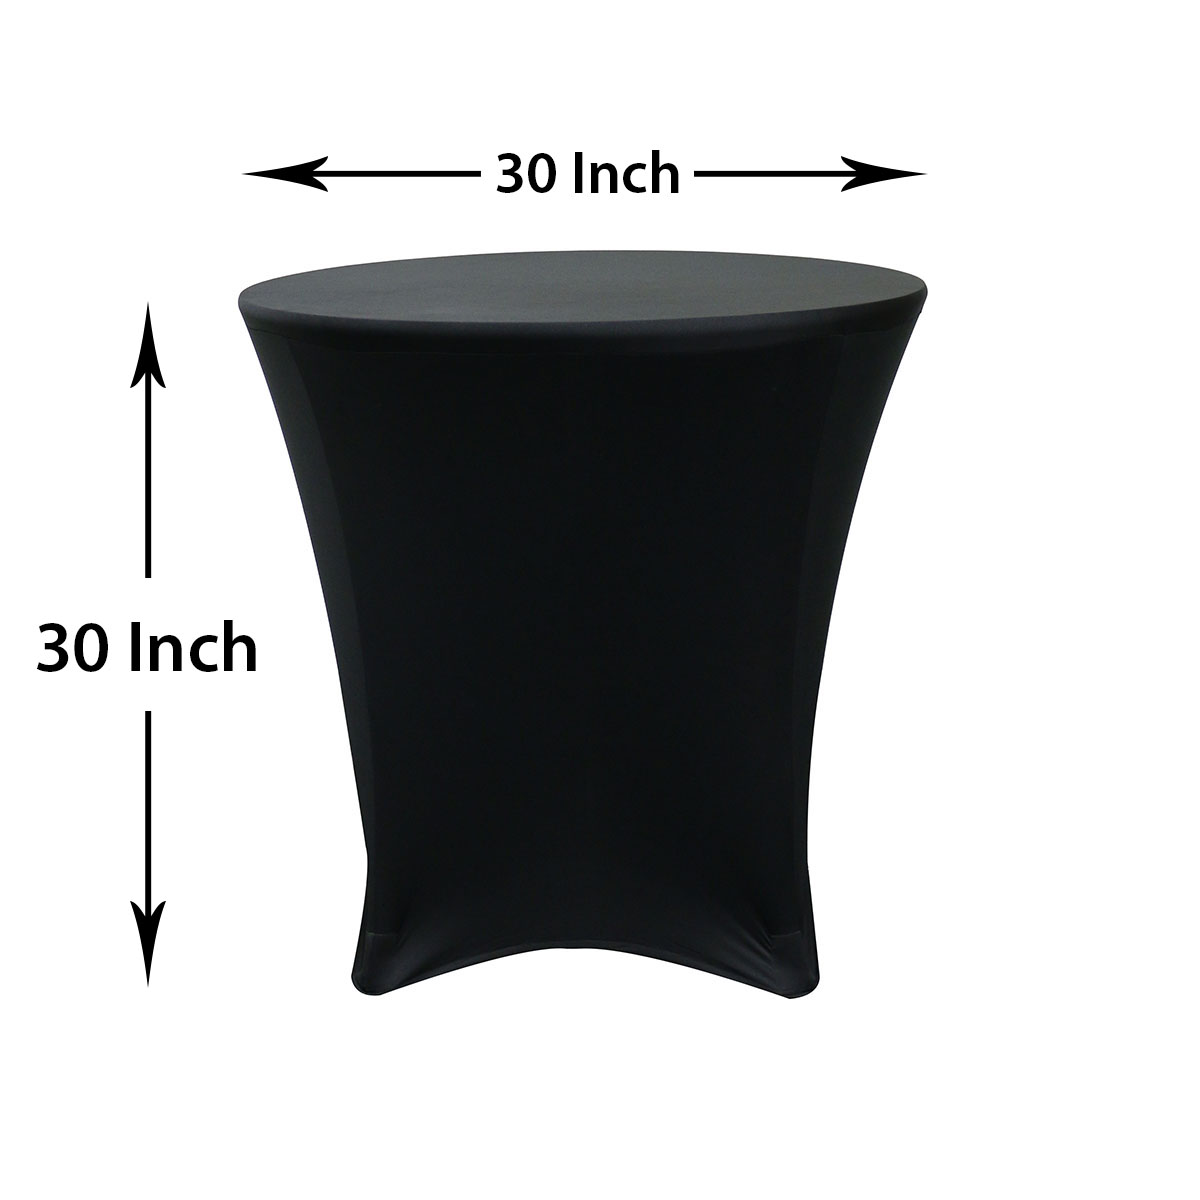 30 Inch Lowboy Tail Spandex Table Covers